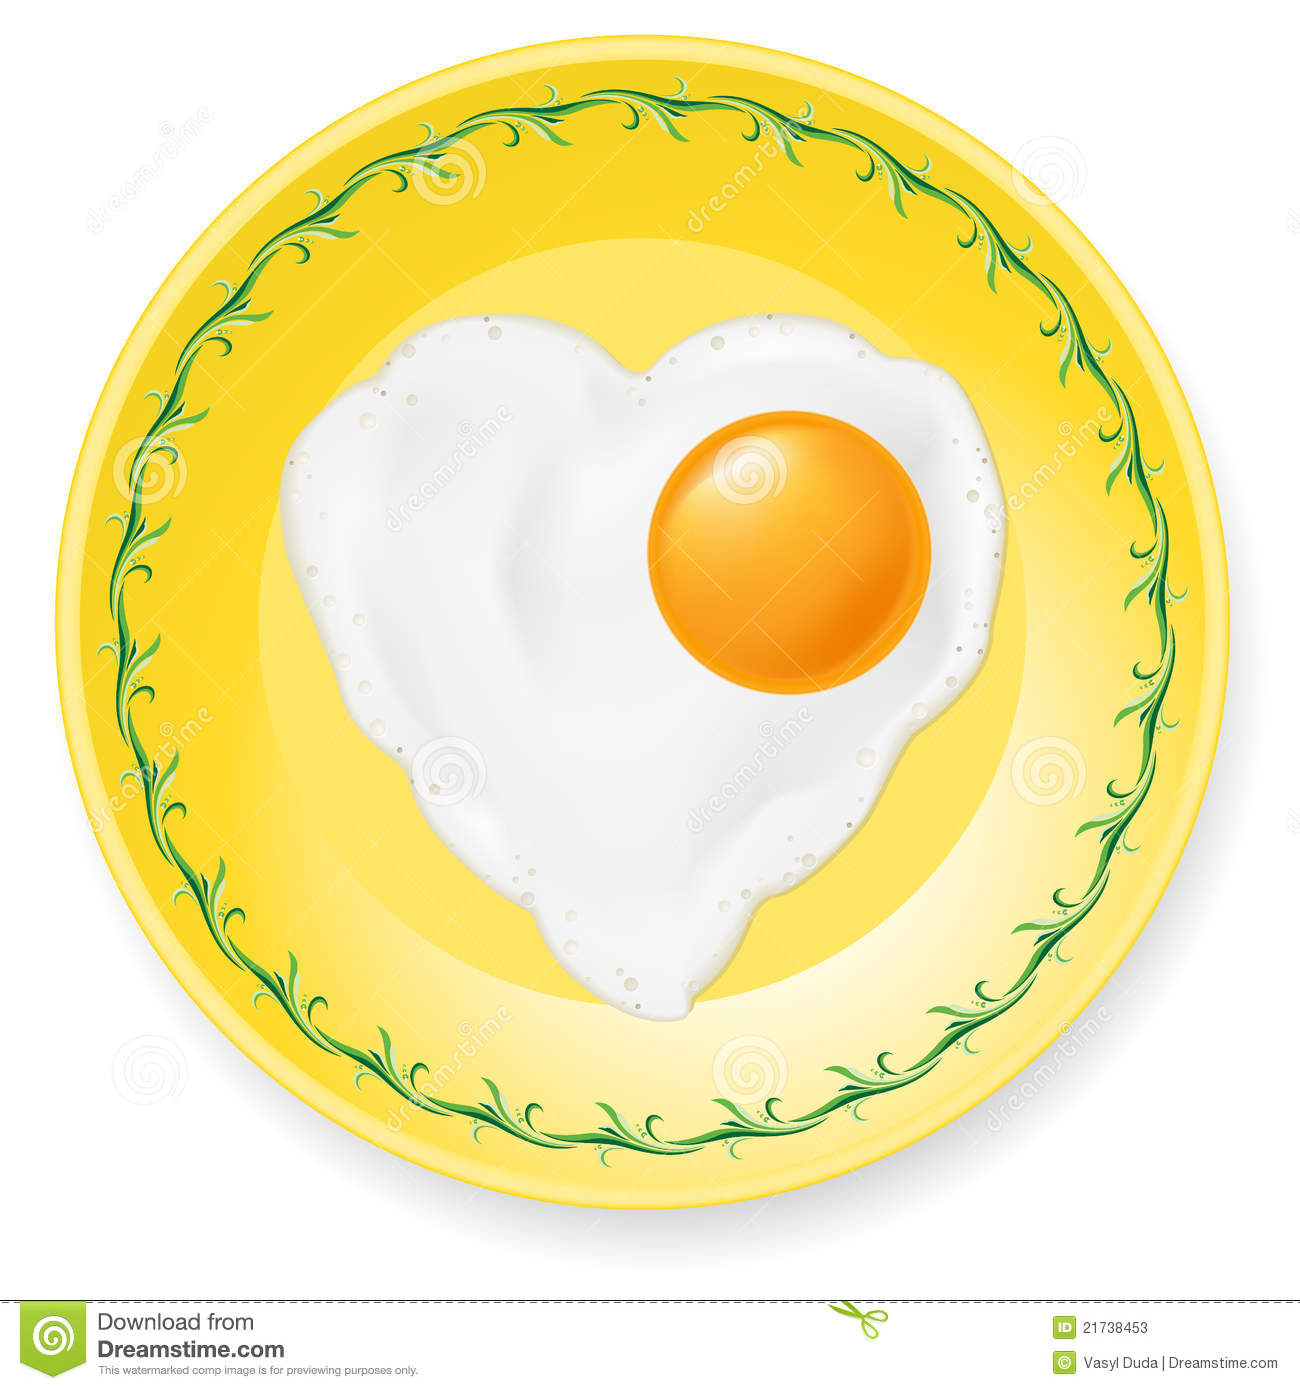 Breakfast With Two Fried Eggs In White Plate Stock Image ...  |Fried Eggs On A Plate